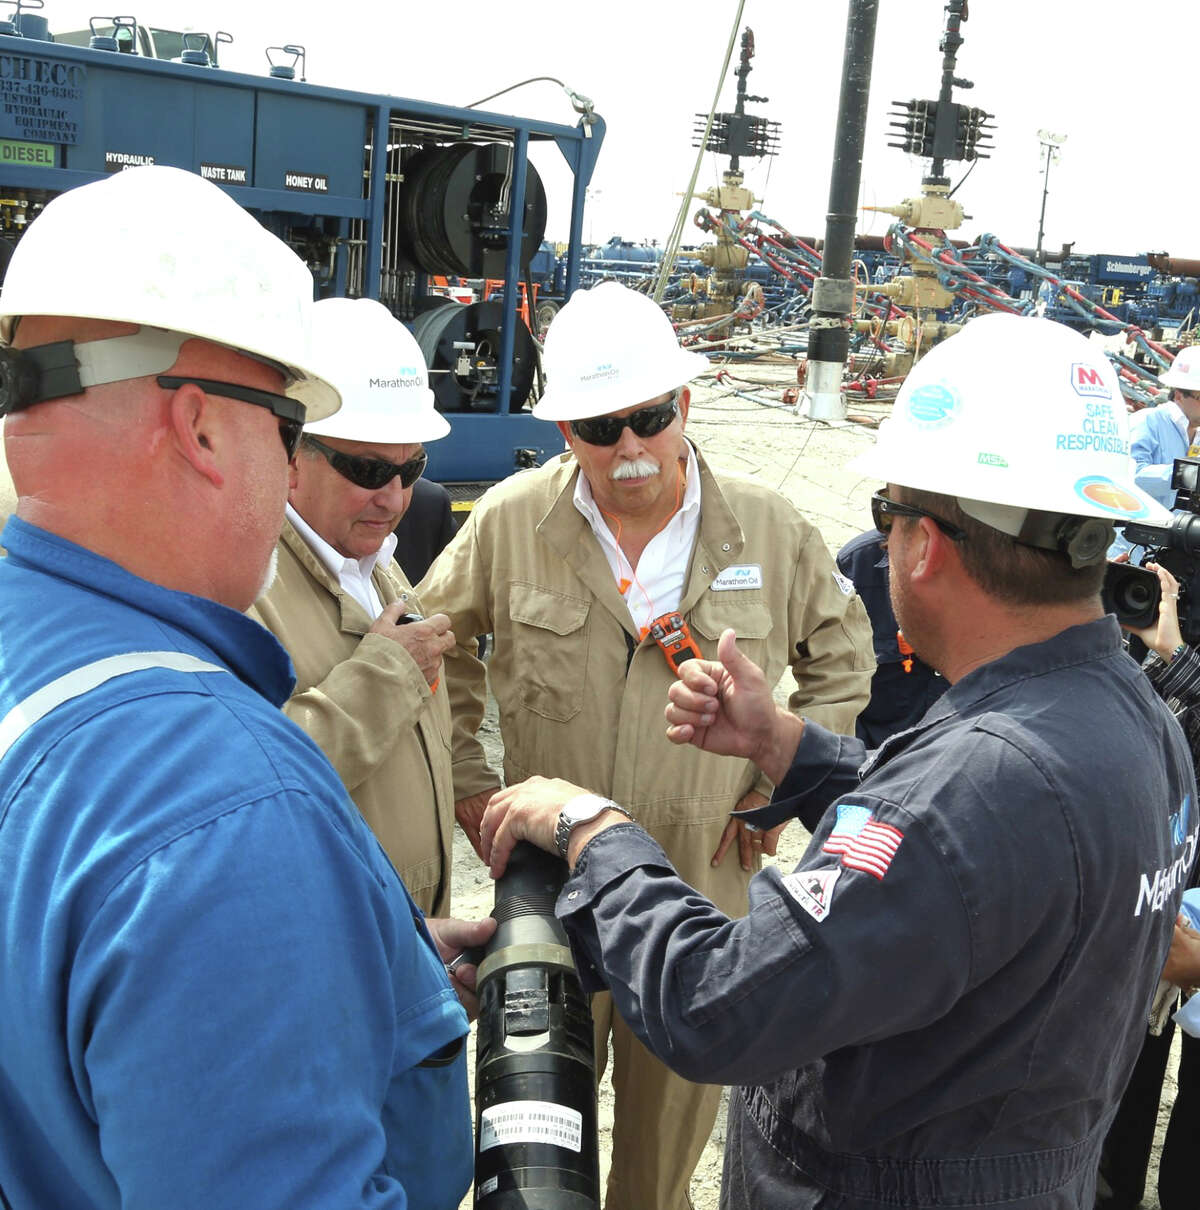 Egidio Torre Cantéº, governor of the Mexican state of Tamaulipas, which shares its northern border with much of South Texas, is seen visiting Marathon Oil facilities in the Eagle Ford Shale play area in Beeville.